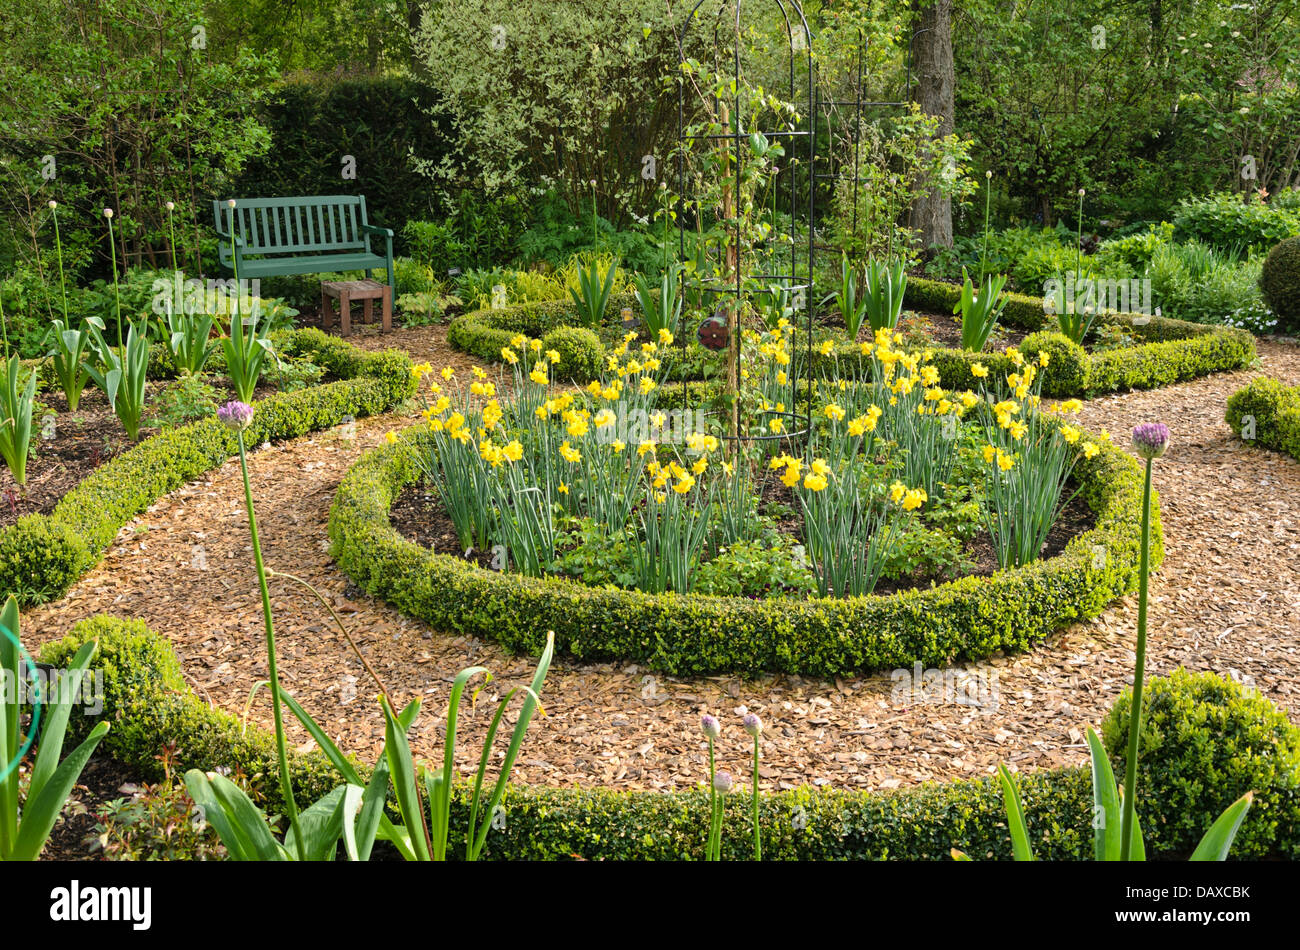 daffodils narcissus and boxwood buxus in a rose garden design daffodils narcissus and boxwood buxus in